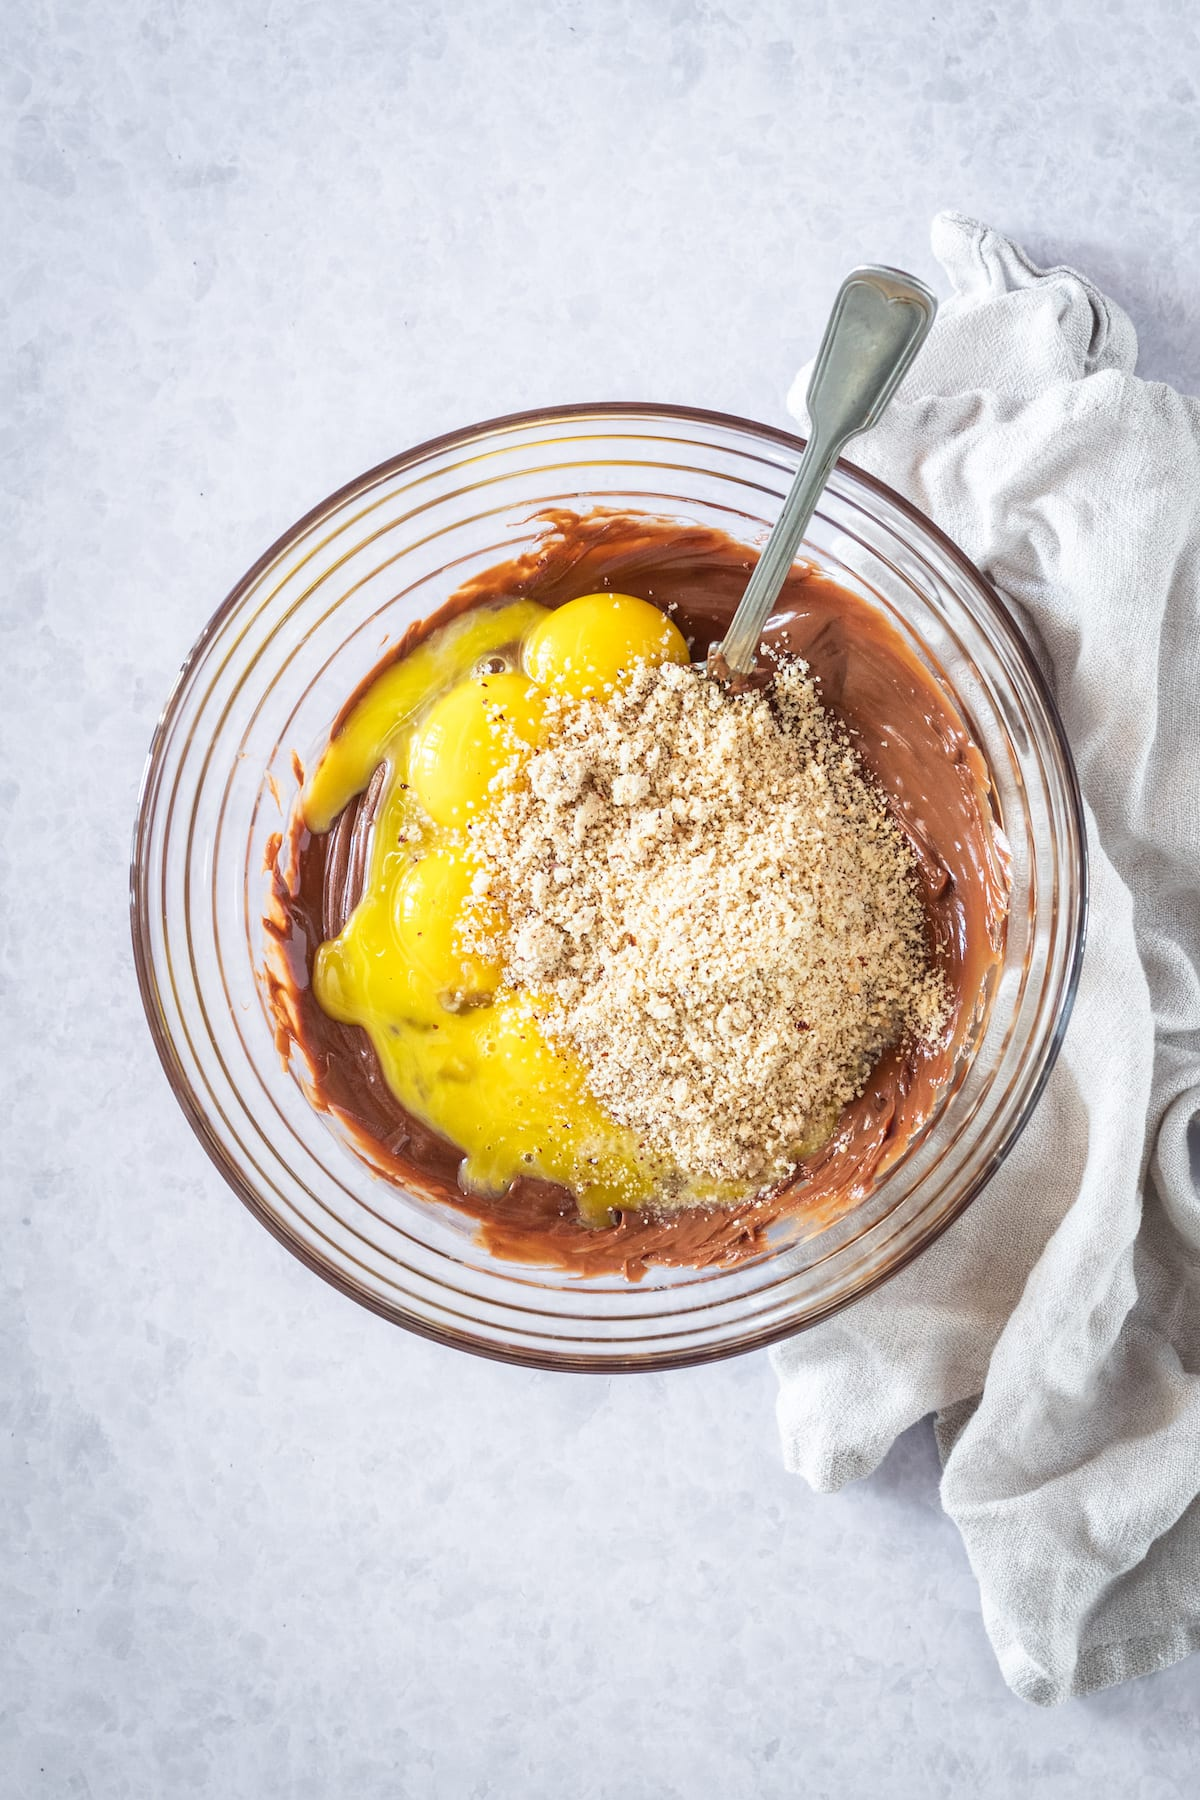 mixing bowl with egg yolks, ground hazelnuts and chocolate